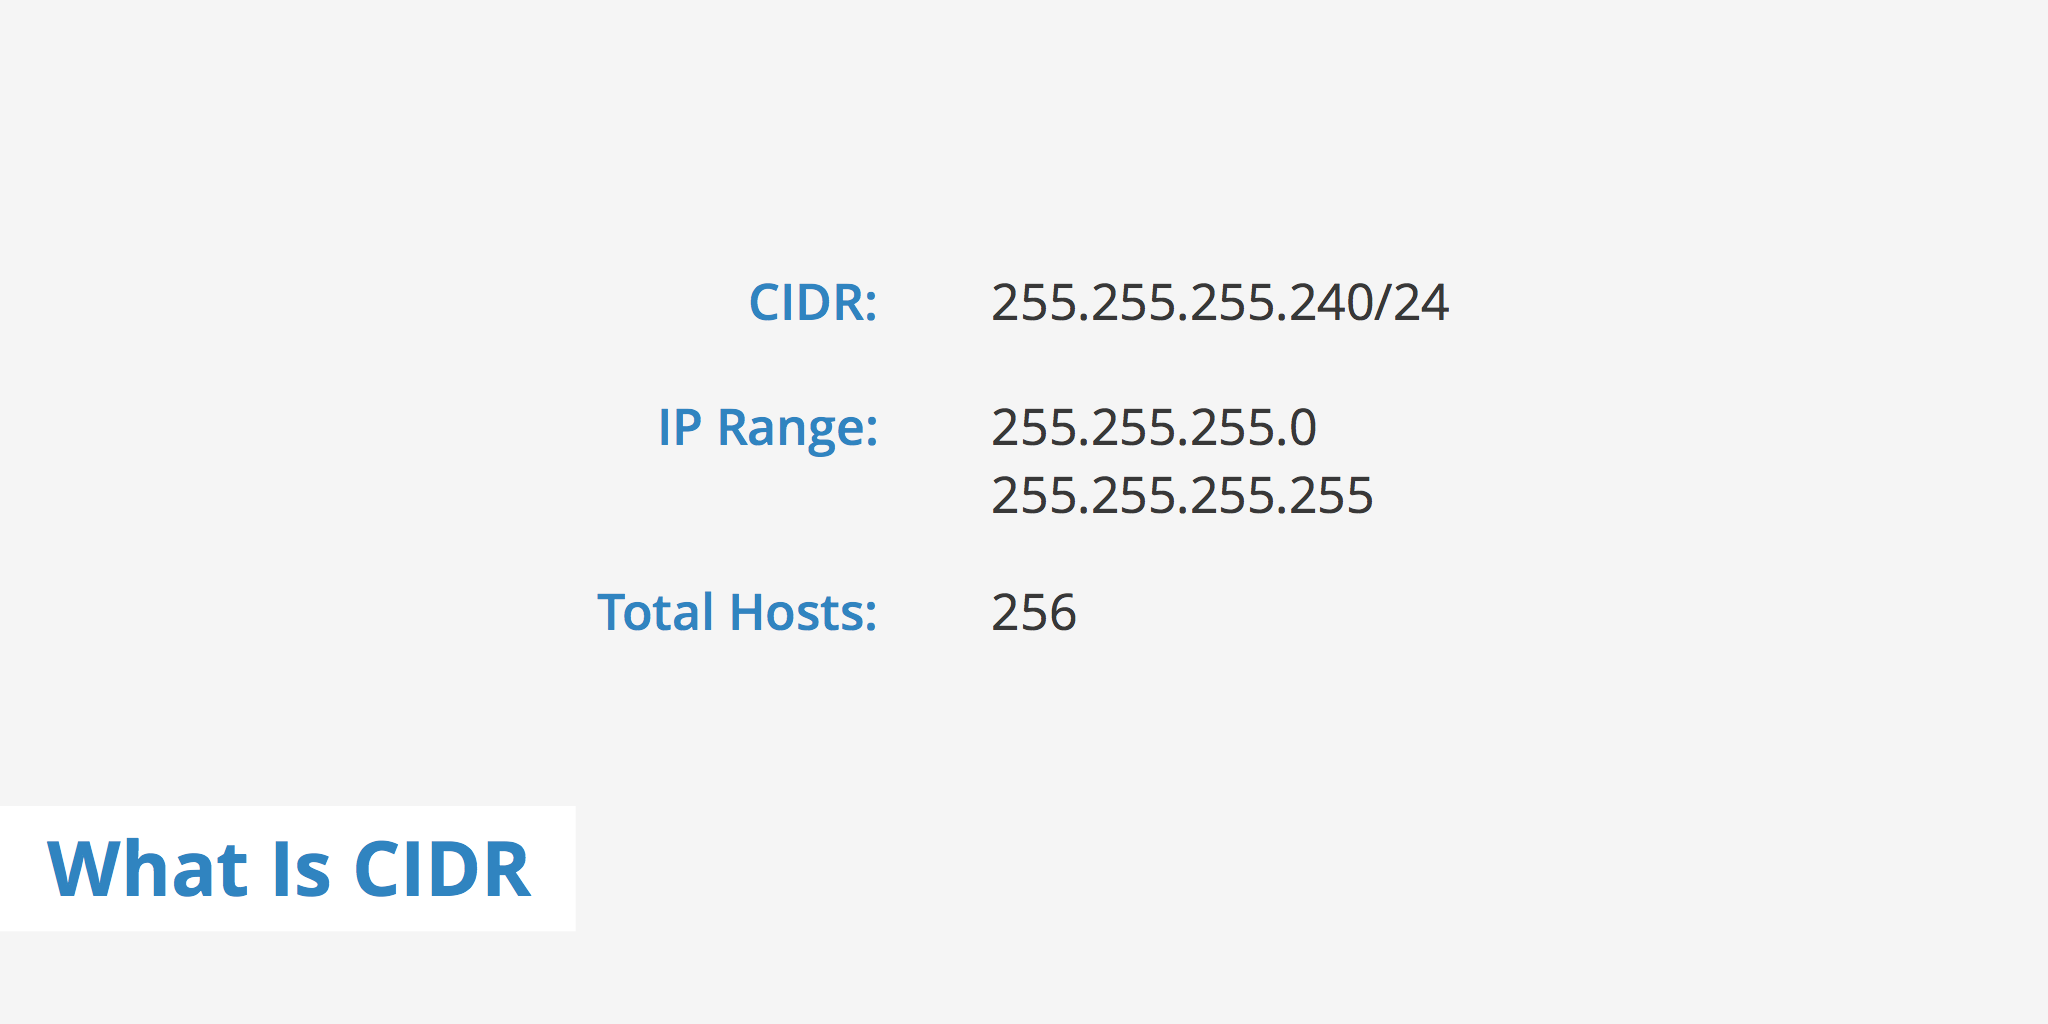 What Is CIDR (Classless Inter-Domain Routing)? - KeyCDN Support